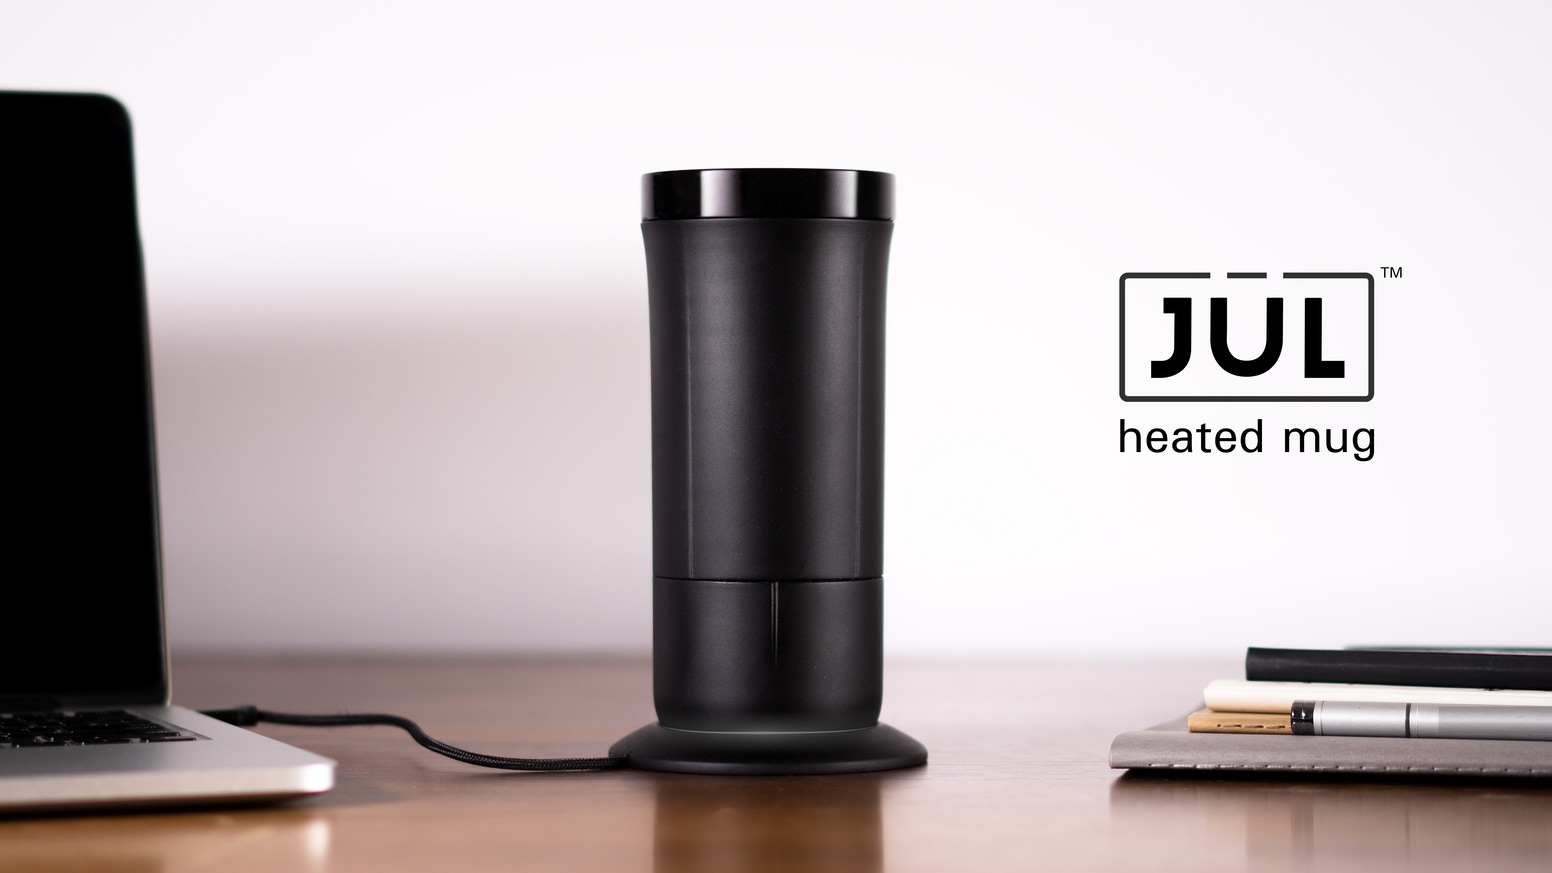 An intelligently designed tumbler that keeps hot beverages at the perfect temperature from the first sip to the last drop. Unfortunately, this project has been cancelled due to manufacturing limitations.